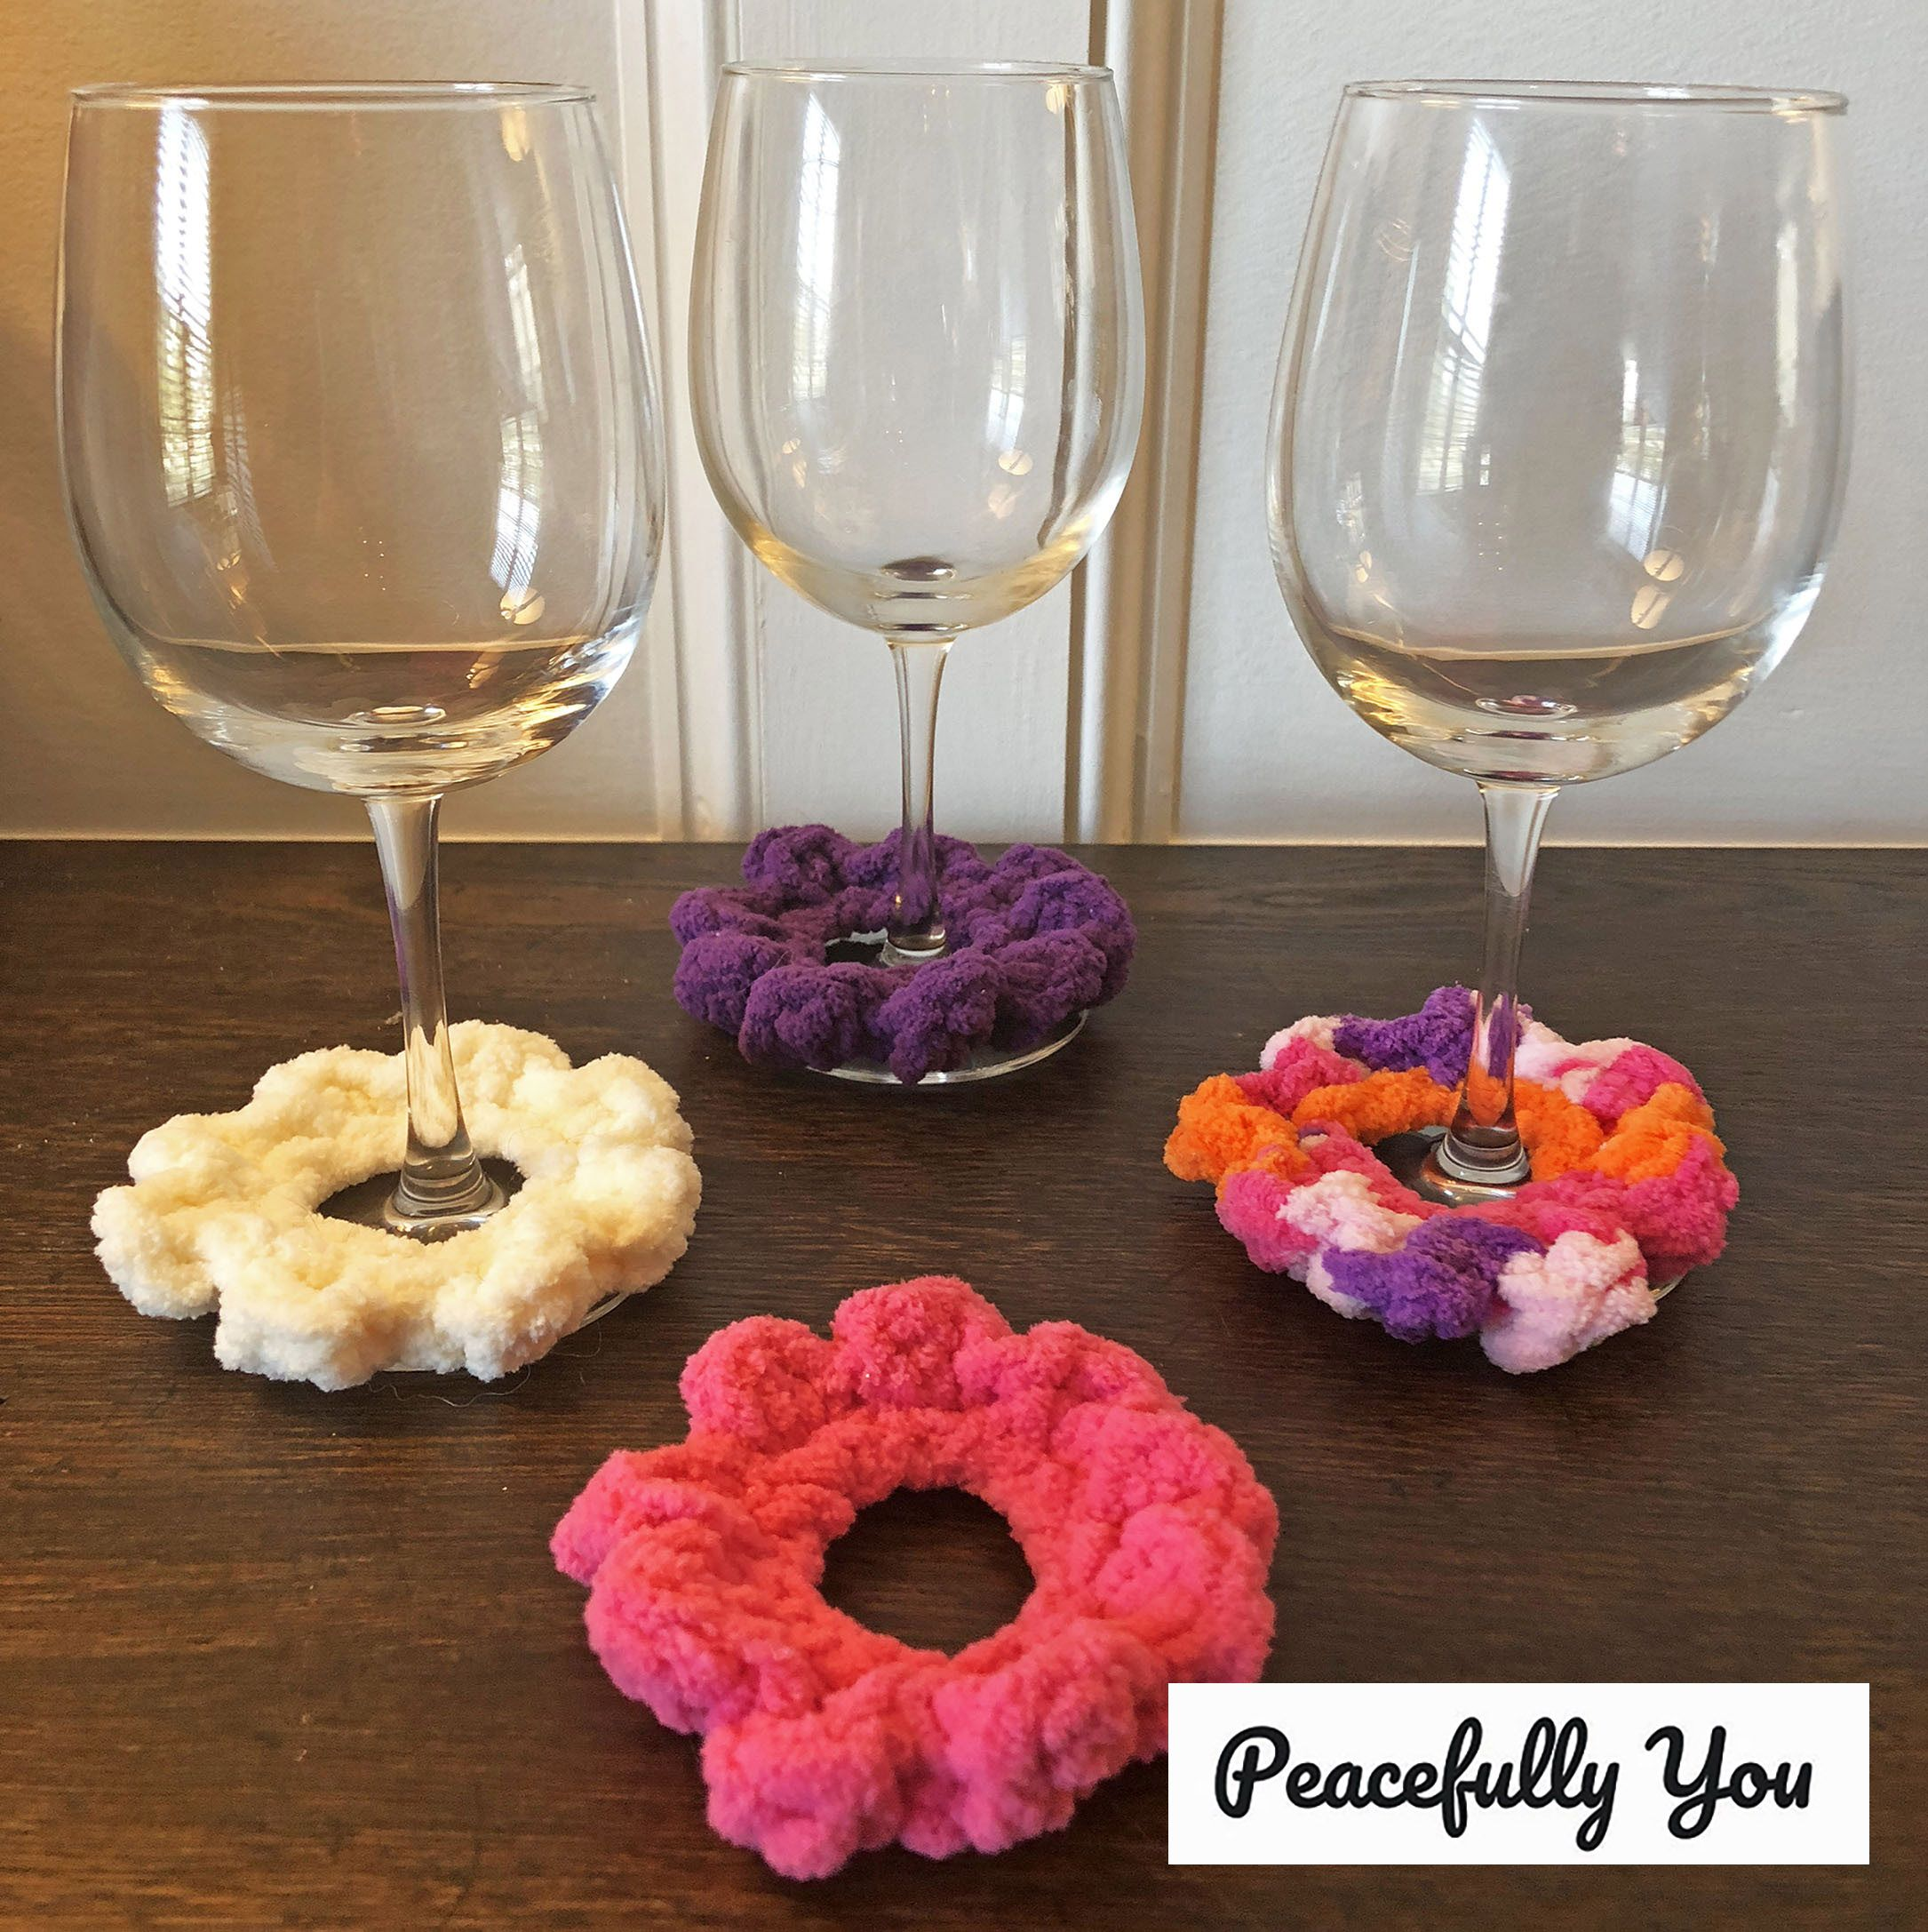 Pin By Peacefully You On Peacefully You At Home With Images Wine Glass Markers Wine Glass Wine Glass Charms